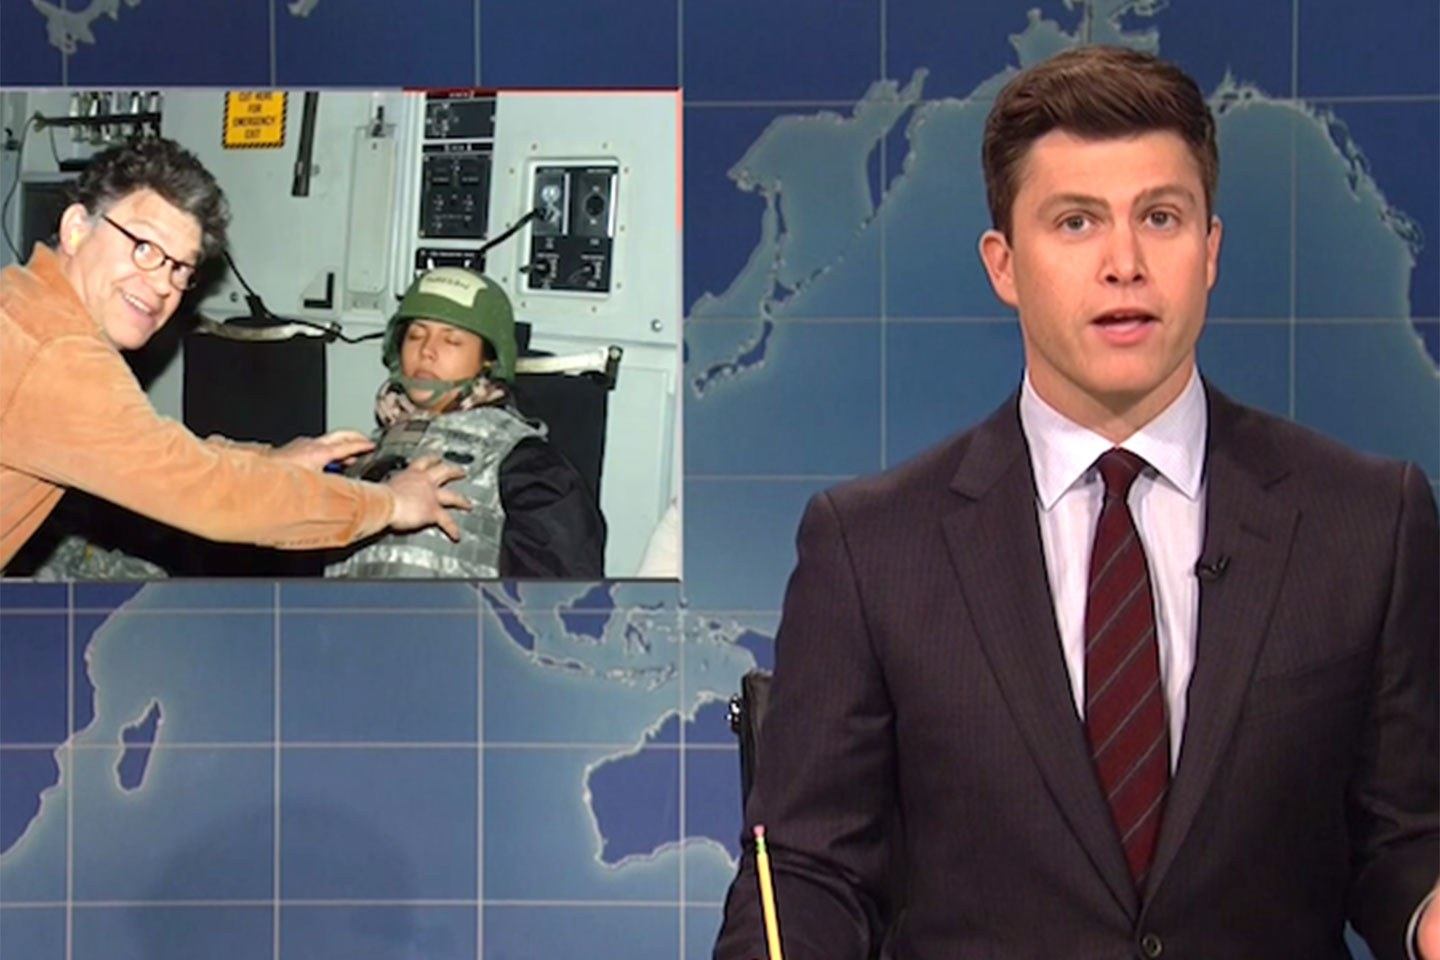 """Colin Jost of Saturday Night Live also addressed Al Franken, a current senator and former fellow SNL cast member, who has joined the mass of men accused of gross sexual behavior. He opened the most recent Thanksgiving episode saying """"There's so much to be thankful for this year, unless you're a human woman."""" Jost continued his segment, the weekend Update, by continuing commentary as this picture flashed on the screen. """"Sure, this photo was taken before Franken ran for office, but it was also taken after he was a sophomore in high school,"""" Jost joked. """"It's hard to be like, 'Come on, he didn't know any better, he was only 55.'"""